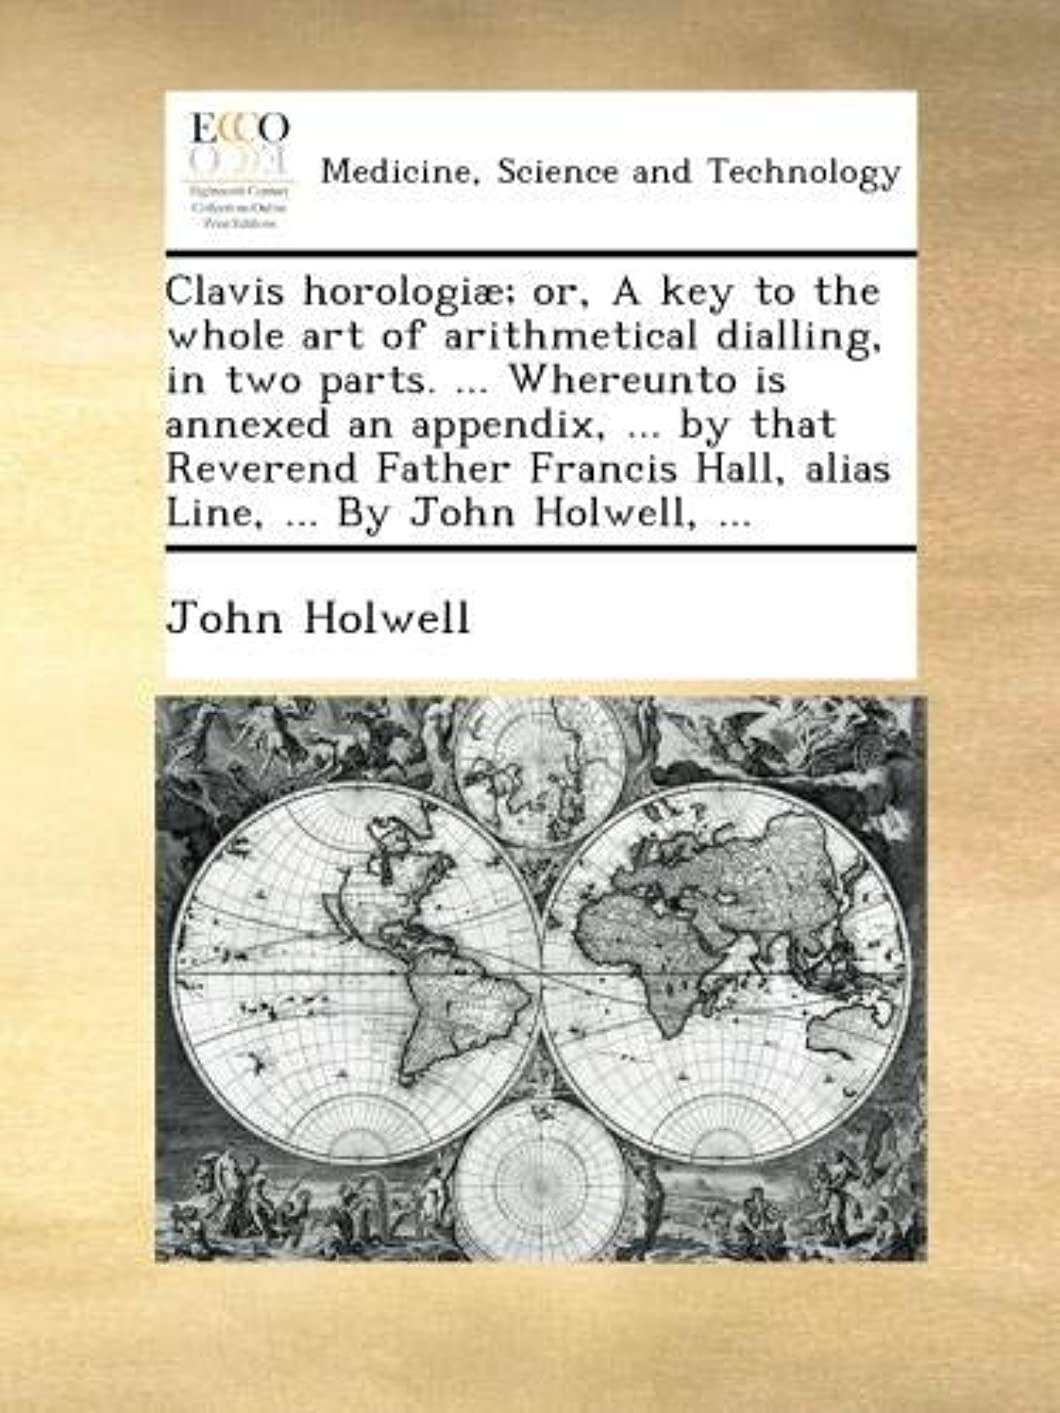 Clavis horologi?; or, A key to the whole art of arithmetical dialling, in two parts. ... Whereunto is annexed an appendix, ... by that Reverend Father Francis Hall, alias Line, ... By John Holwell, ...